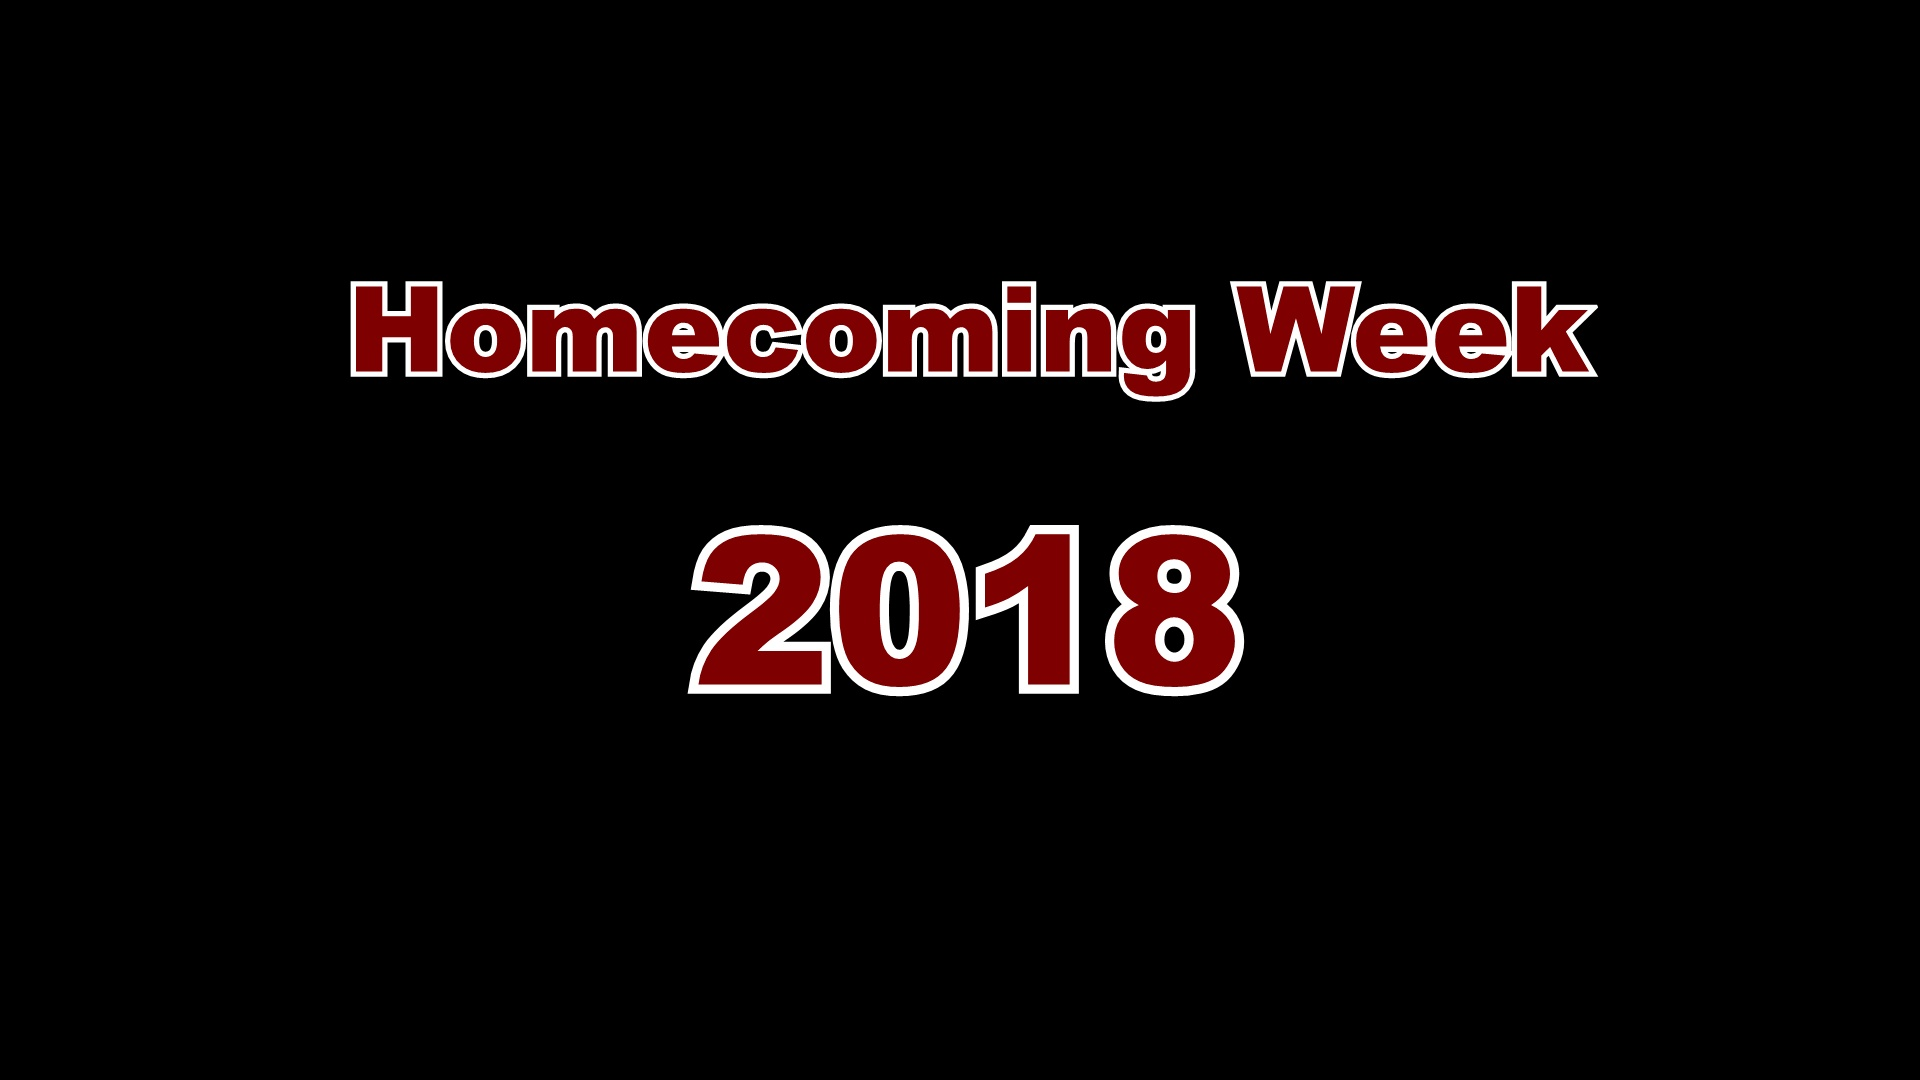 2018 Homecomeing Week